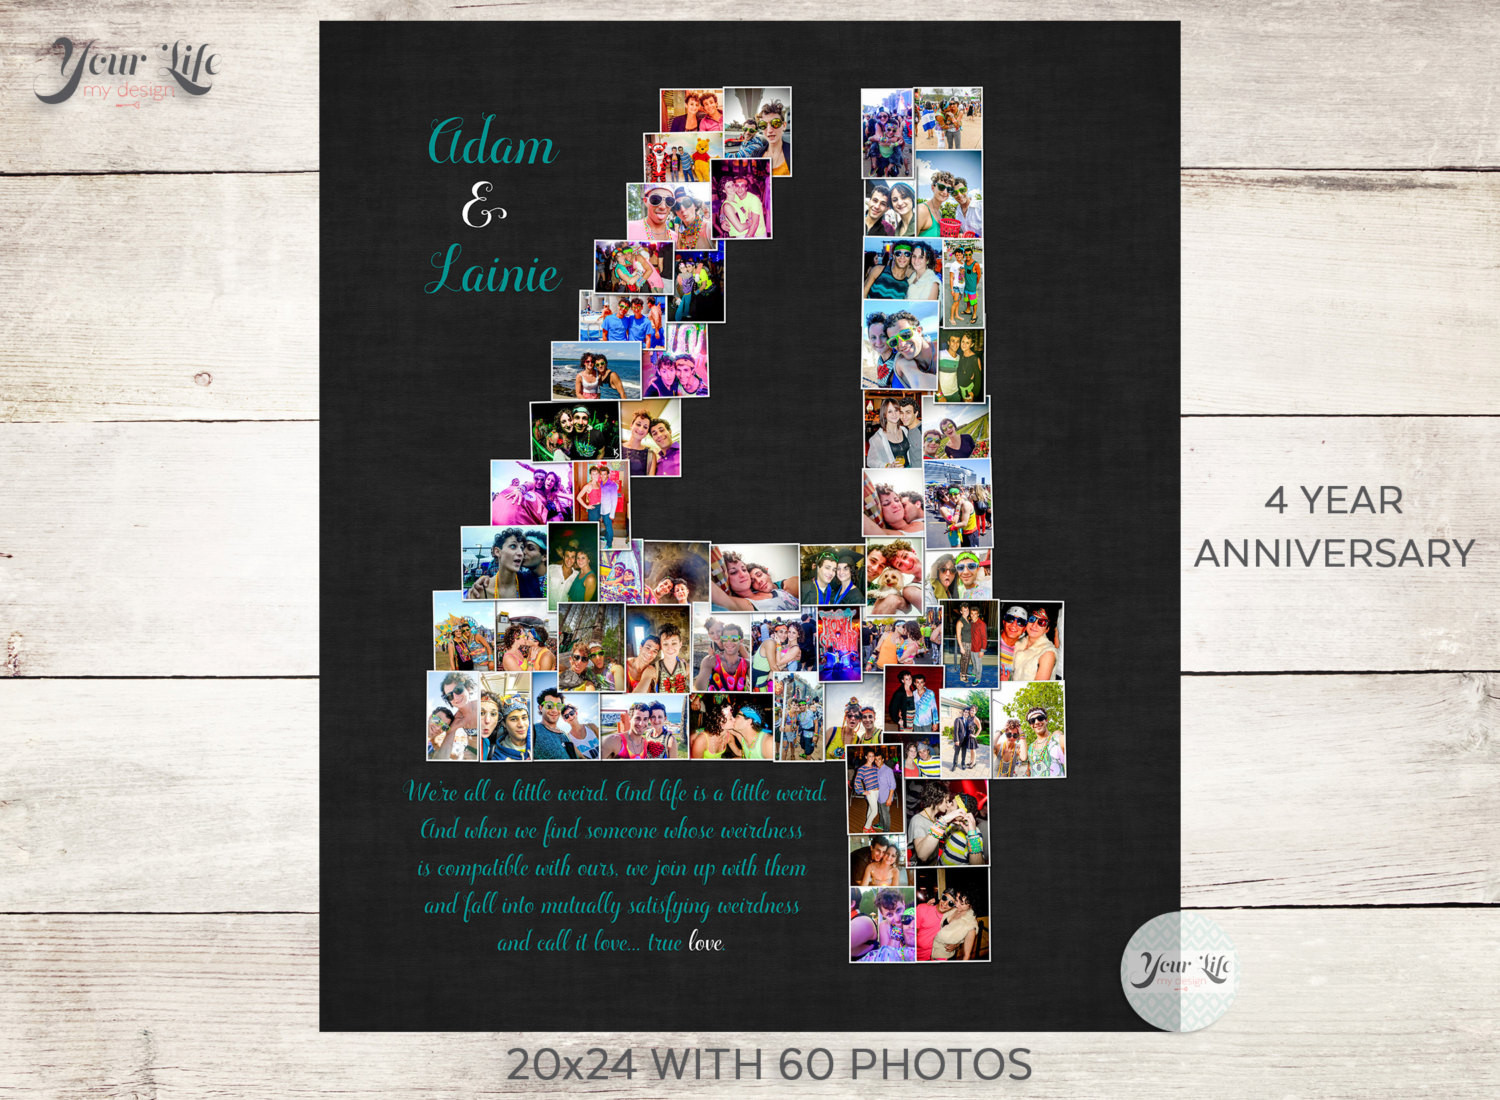 Best ideas about 4 Year Wedding Anniversary Gift Ideas For Him . Save or Pin 4 YEAR ANNIVERSARY 4th Anniversary Gift Collage 4th Now.